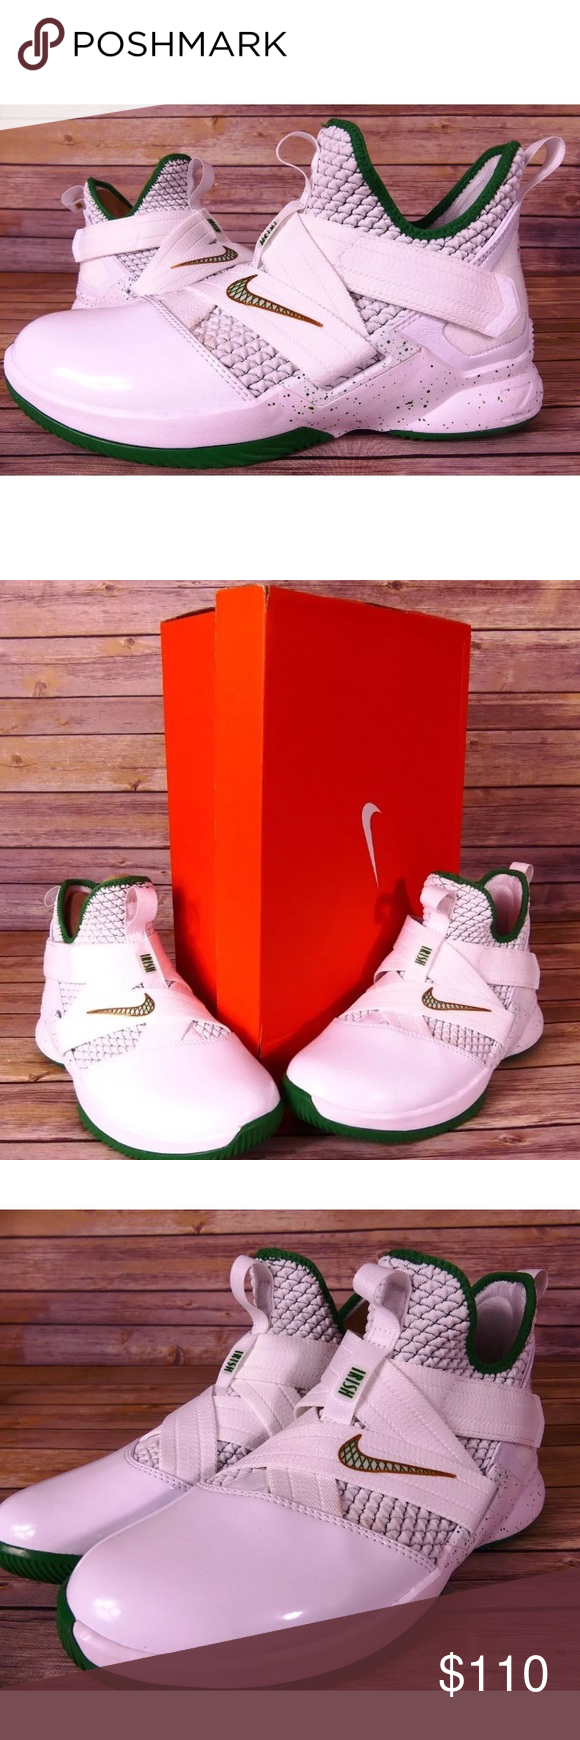 6be4b62cc0a62 Nike Lebron James Soldier XII GS Basketball Shoes Please Make Offers!!!  Thank you